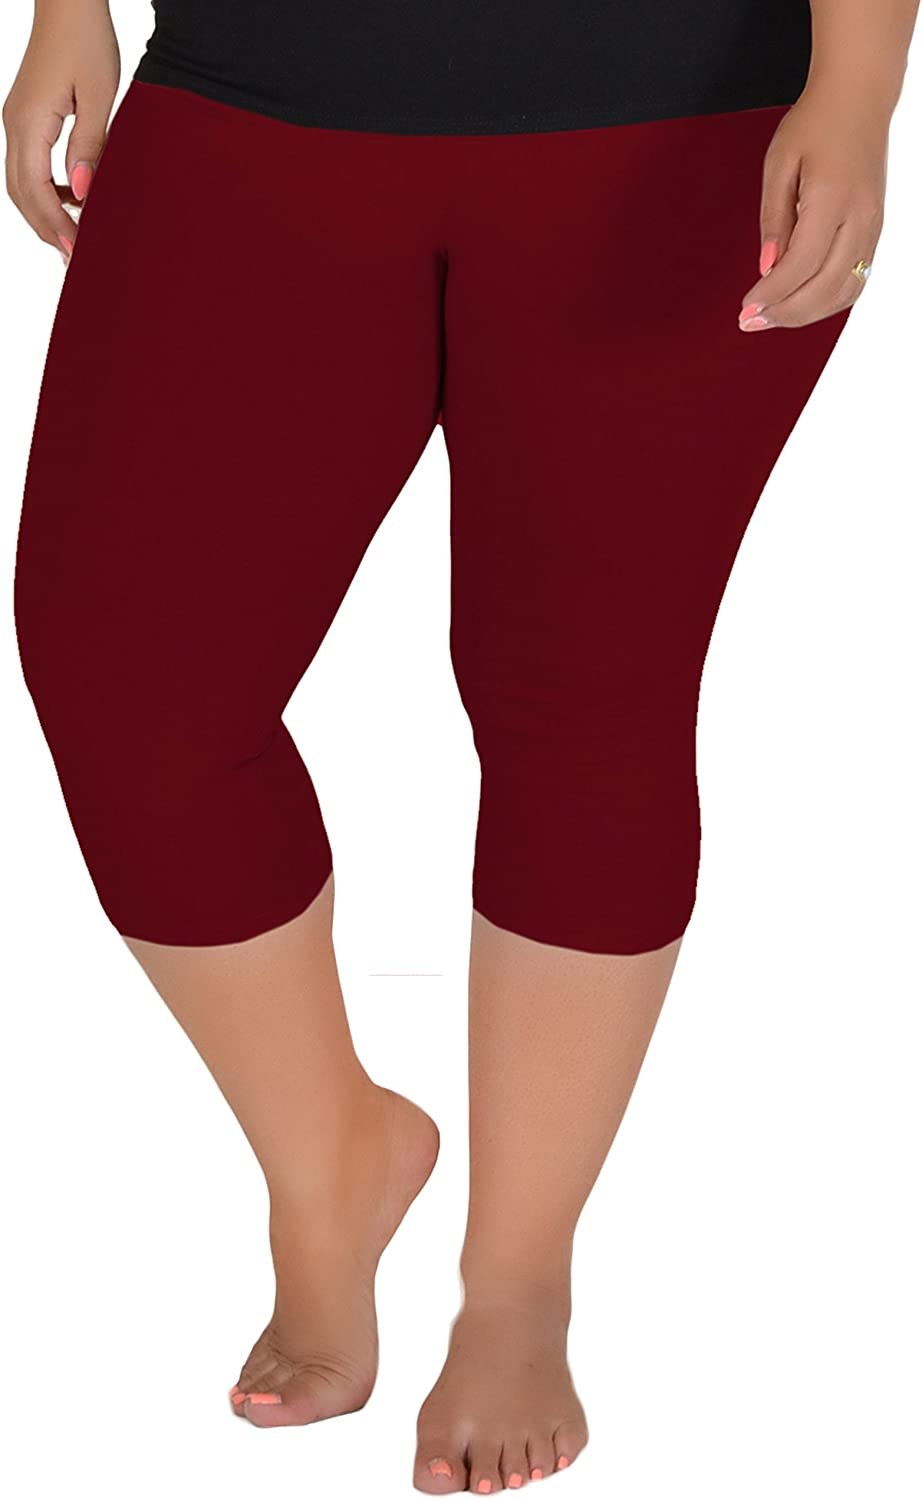 Stretch is Comfort Womens Plus Size Knee Length Leggings